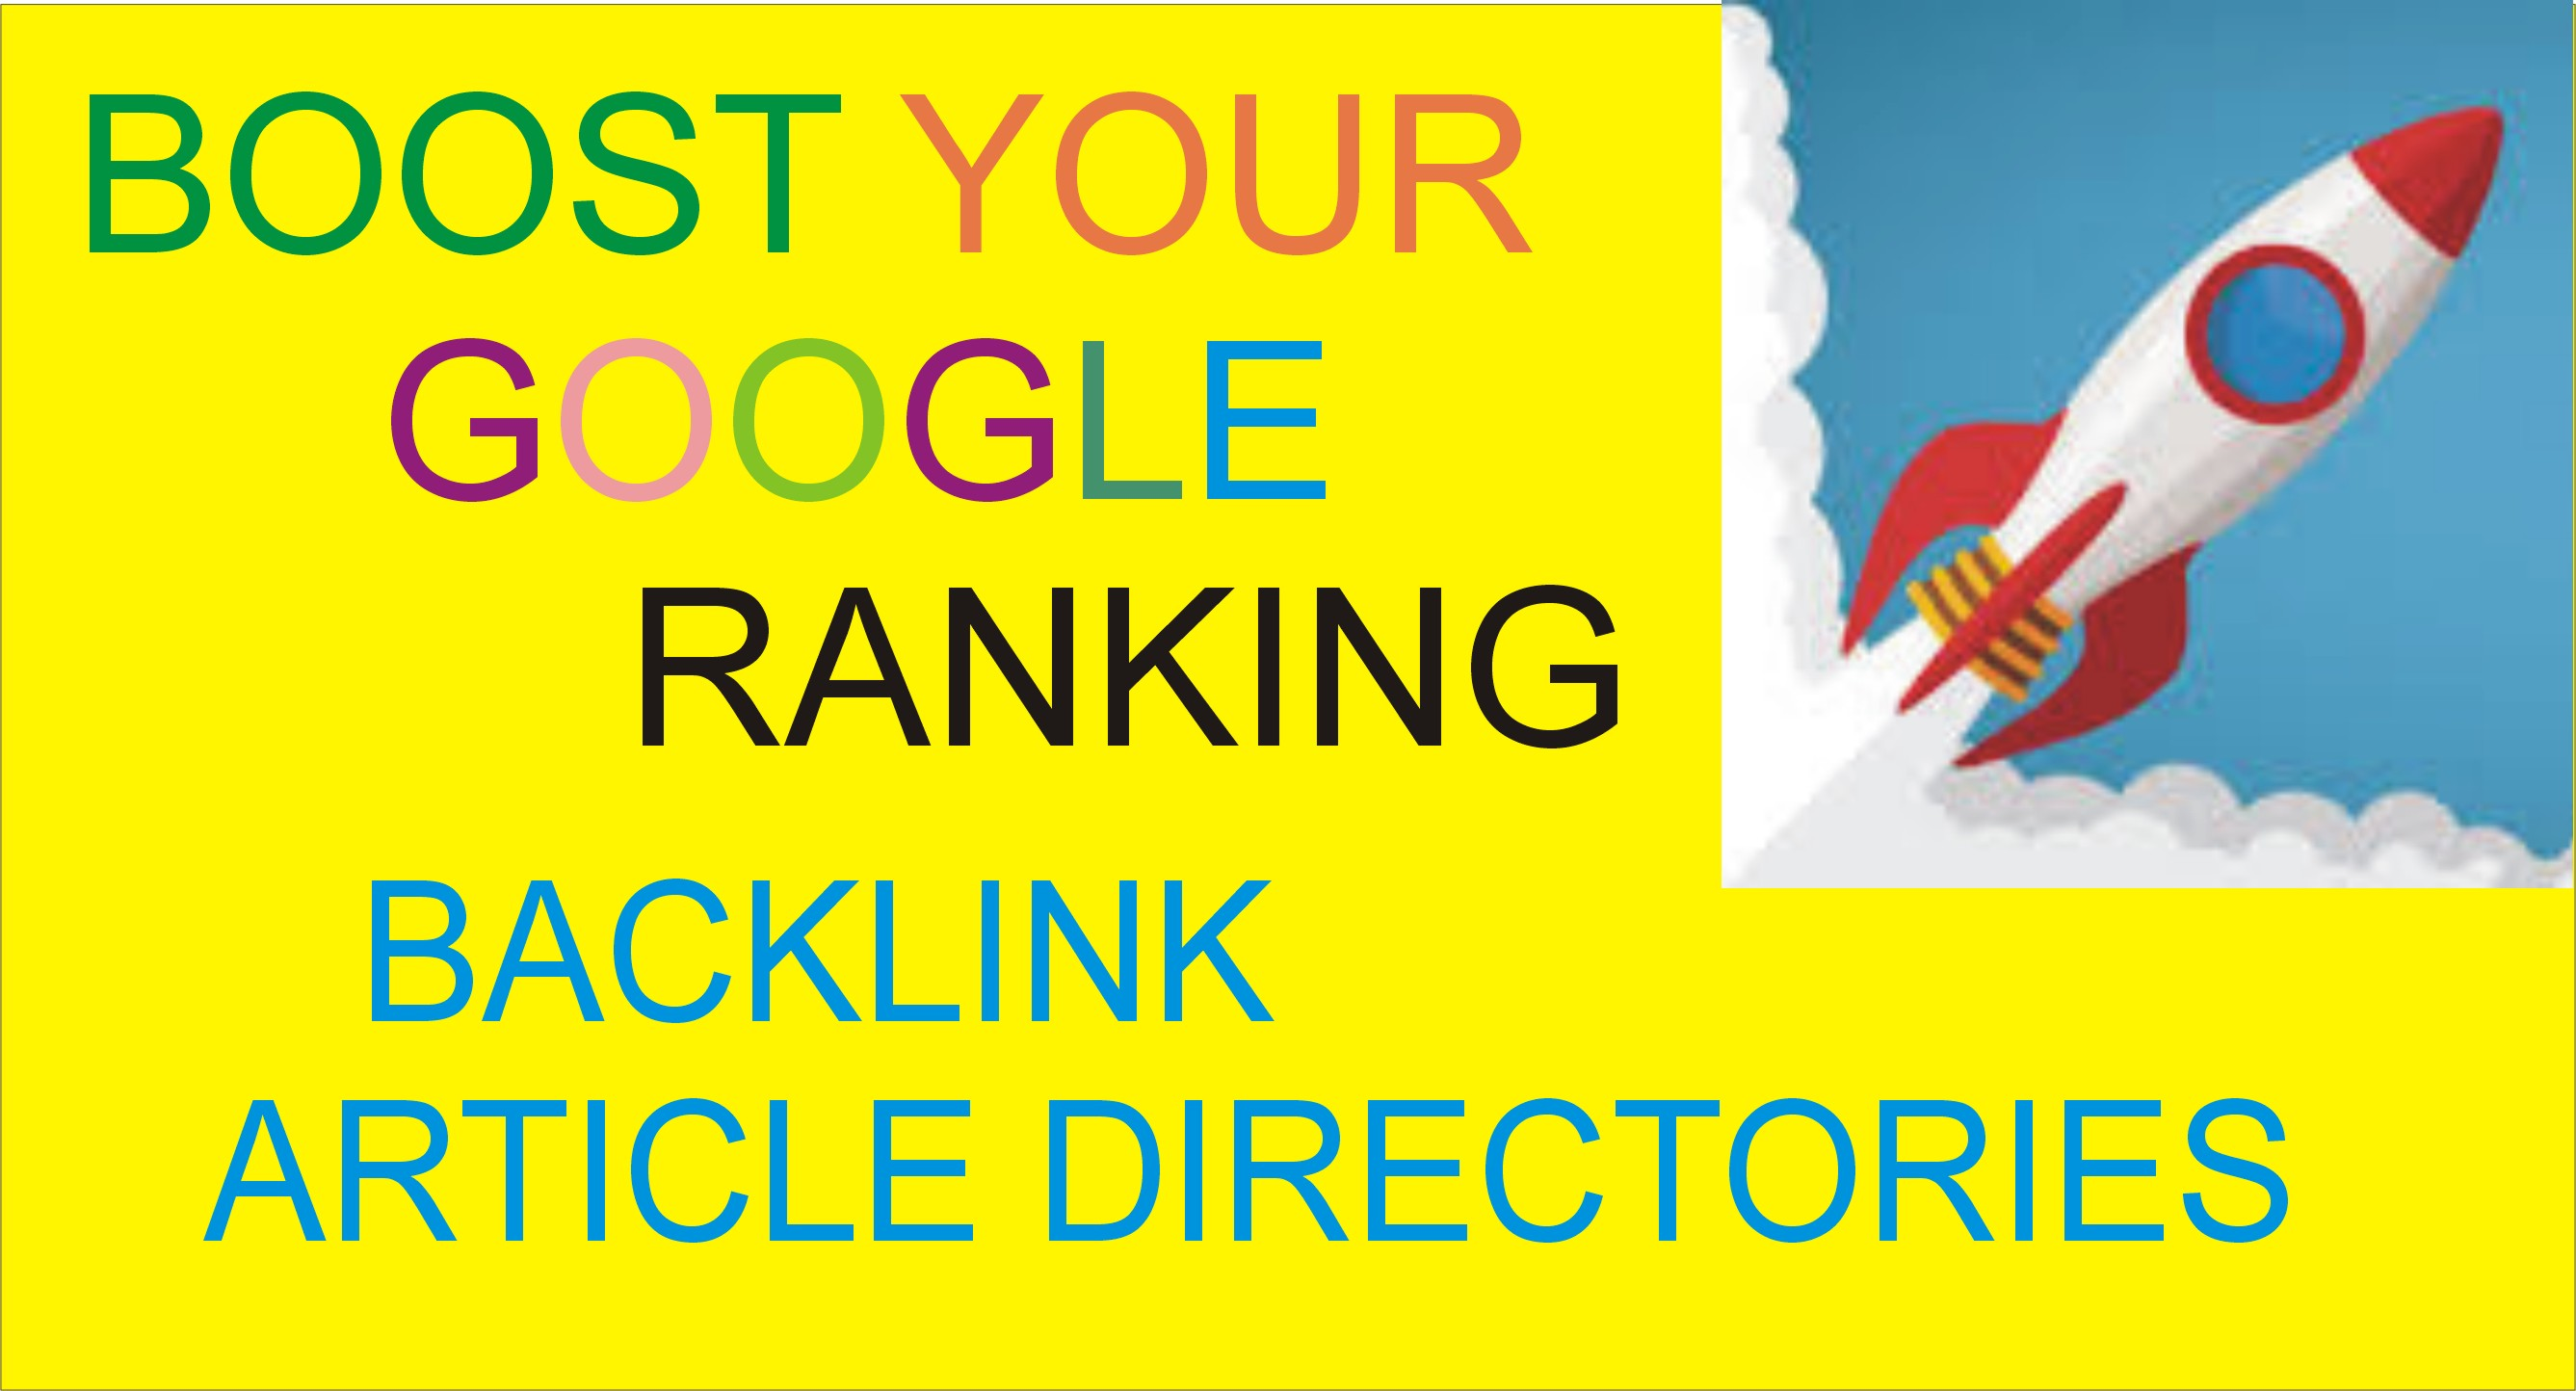 200 Article Directories Backlinks To provide Google Ranking Improves